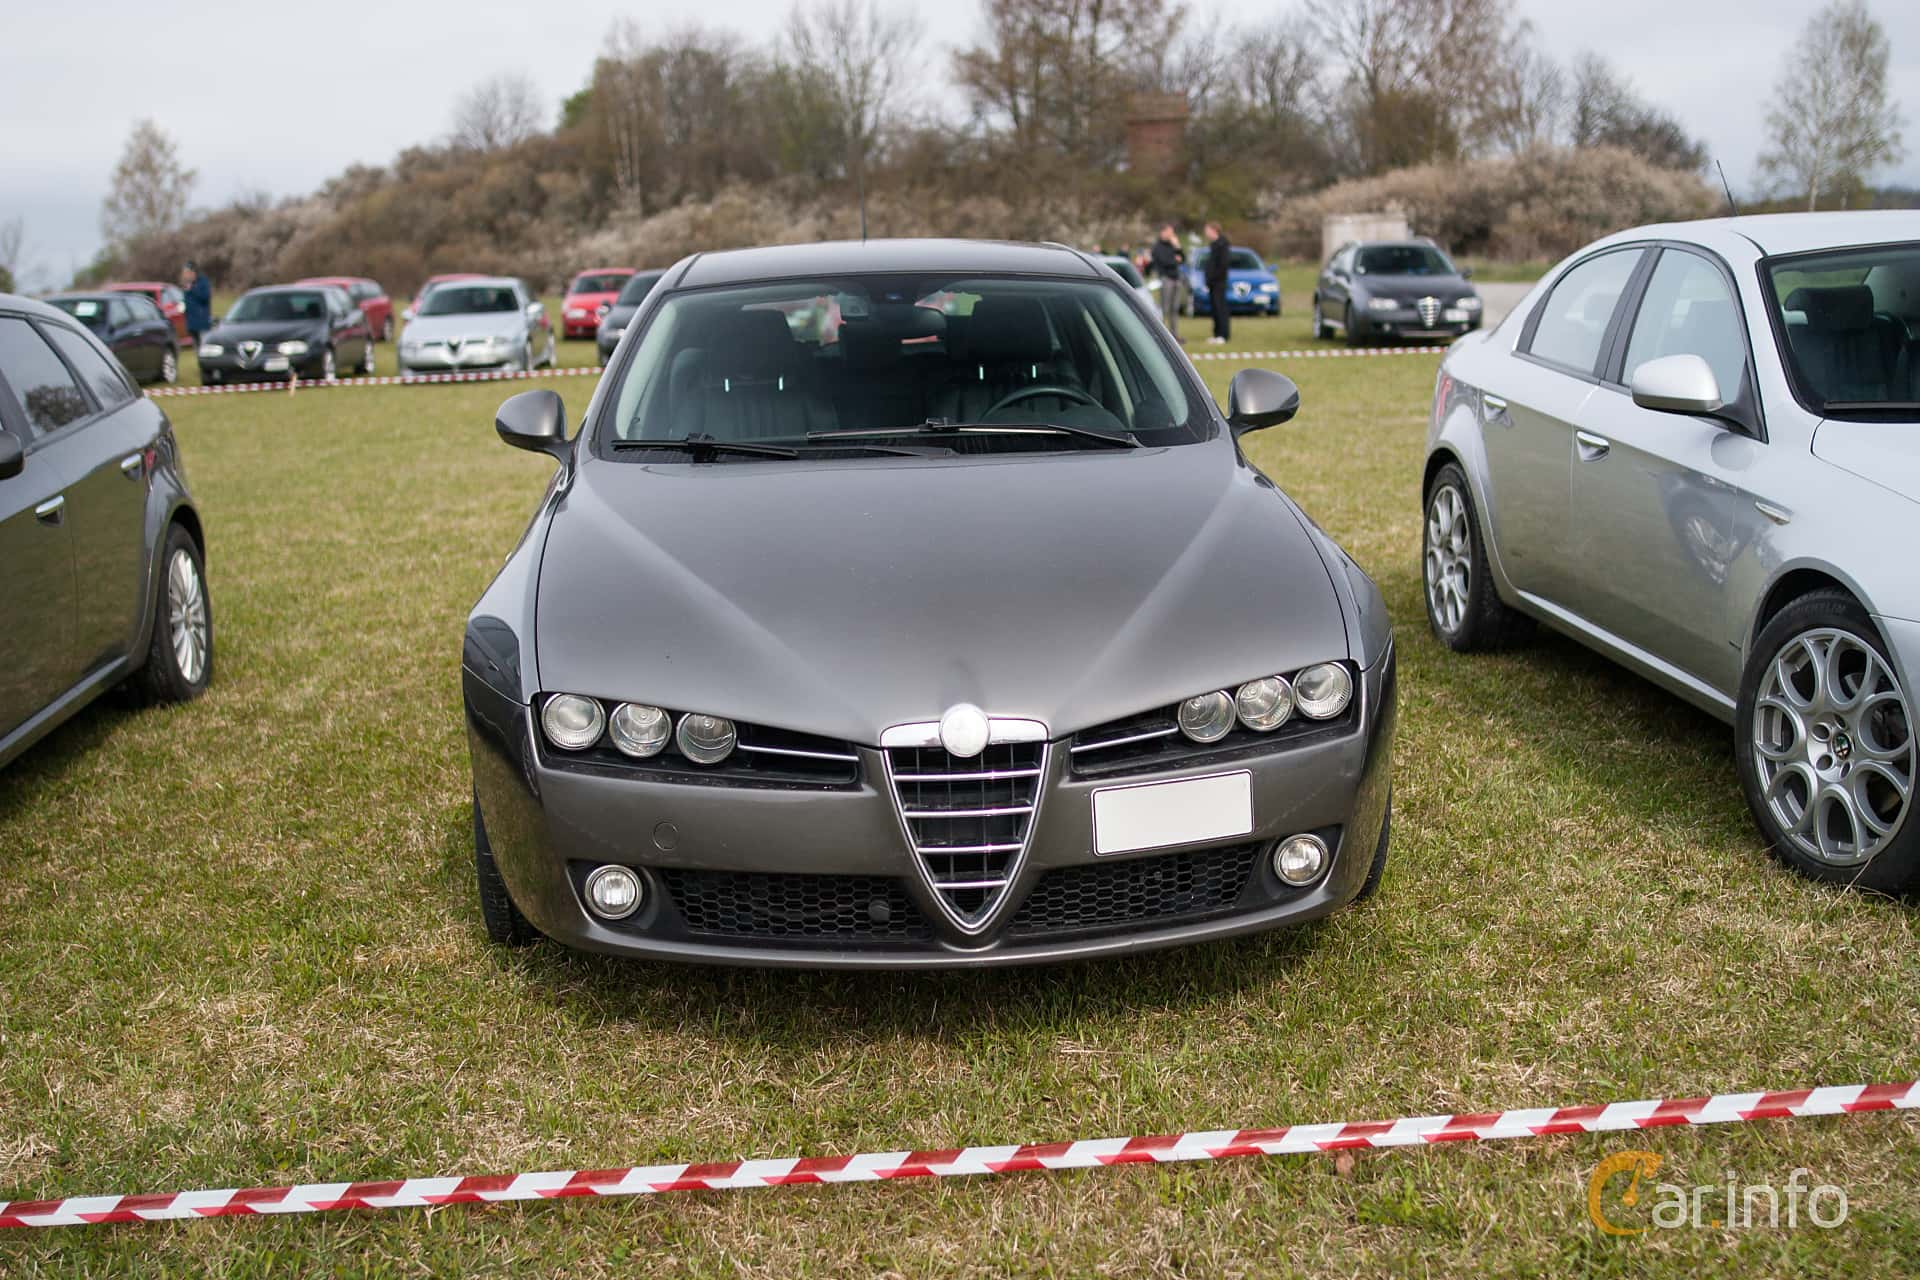 2 images of alfa romeo 159 sportwagon 2 2 jts 16v manual 185hp rh car info alfa romeo 159 manual cz alfa romeo 159 manuale d'uso